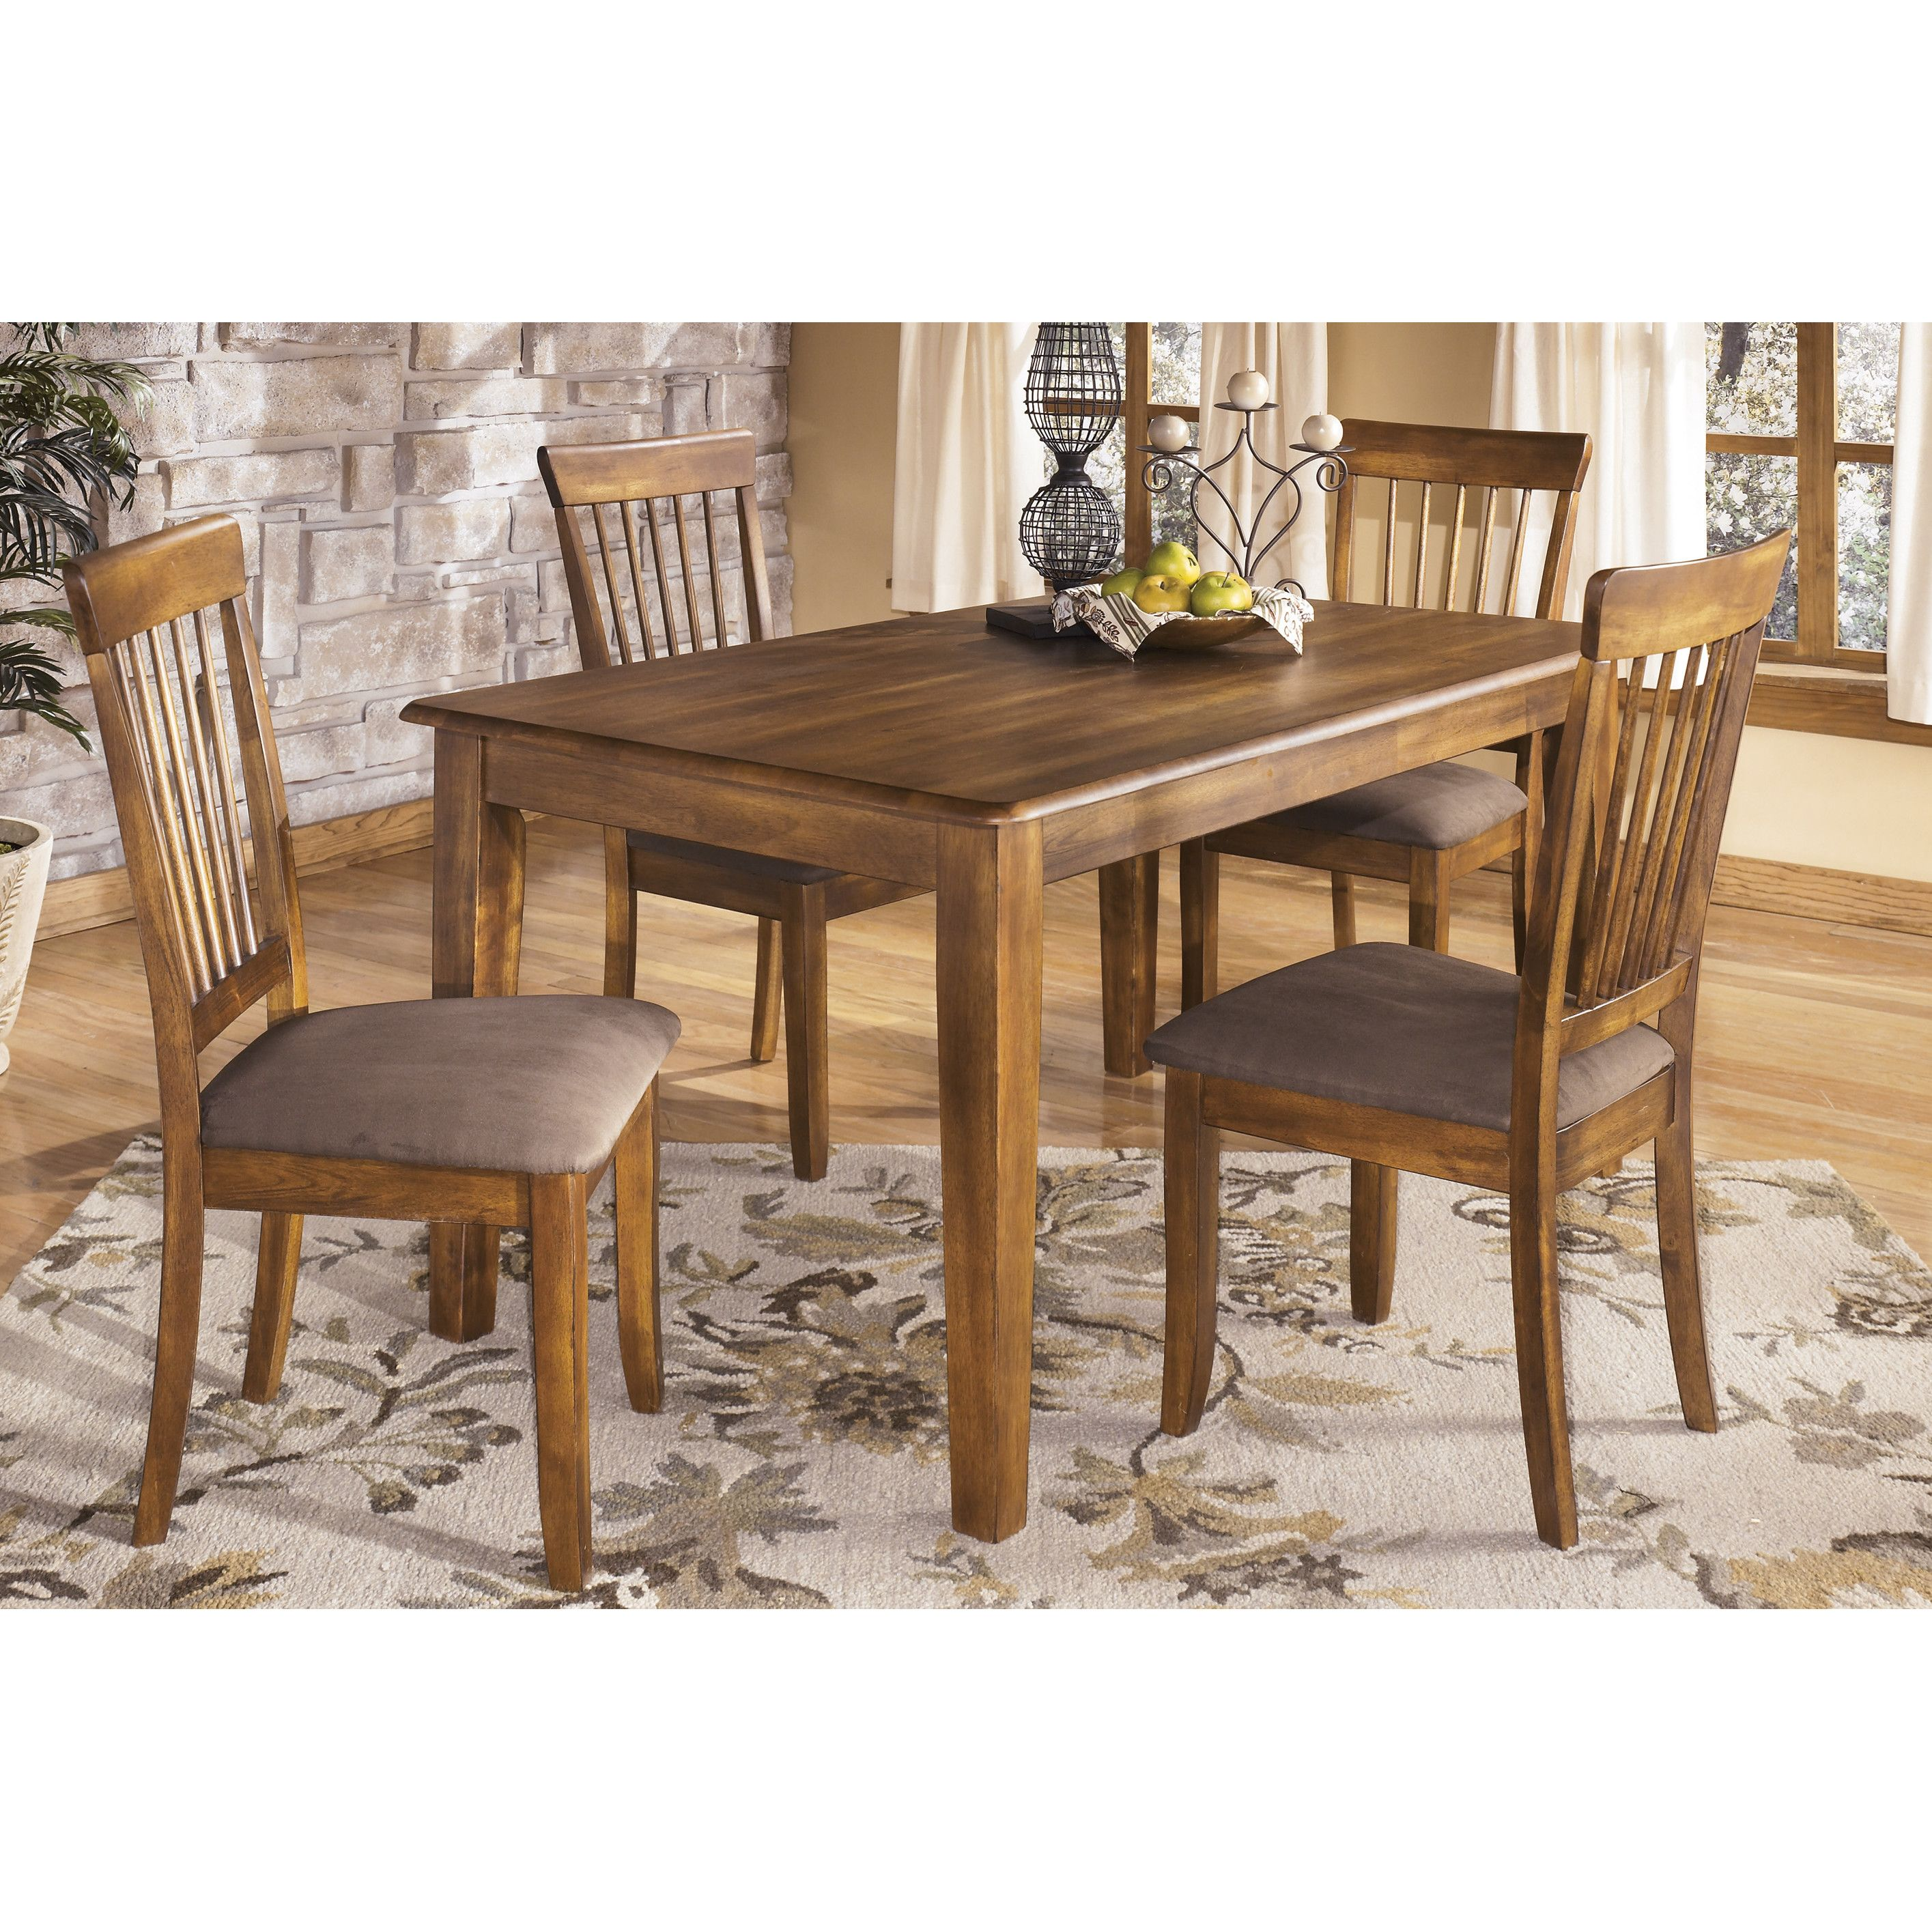 Loon Peak Kaiser Point 5 Piece Dining Set Dining Chairs Dining Table Beautiful Dining Rooms